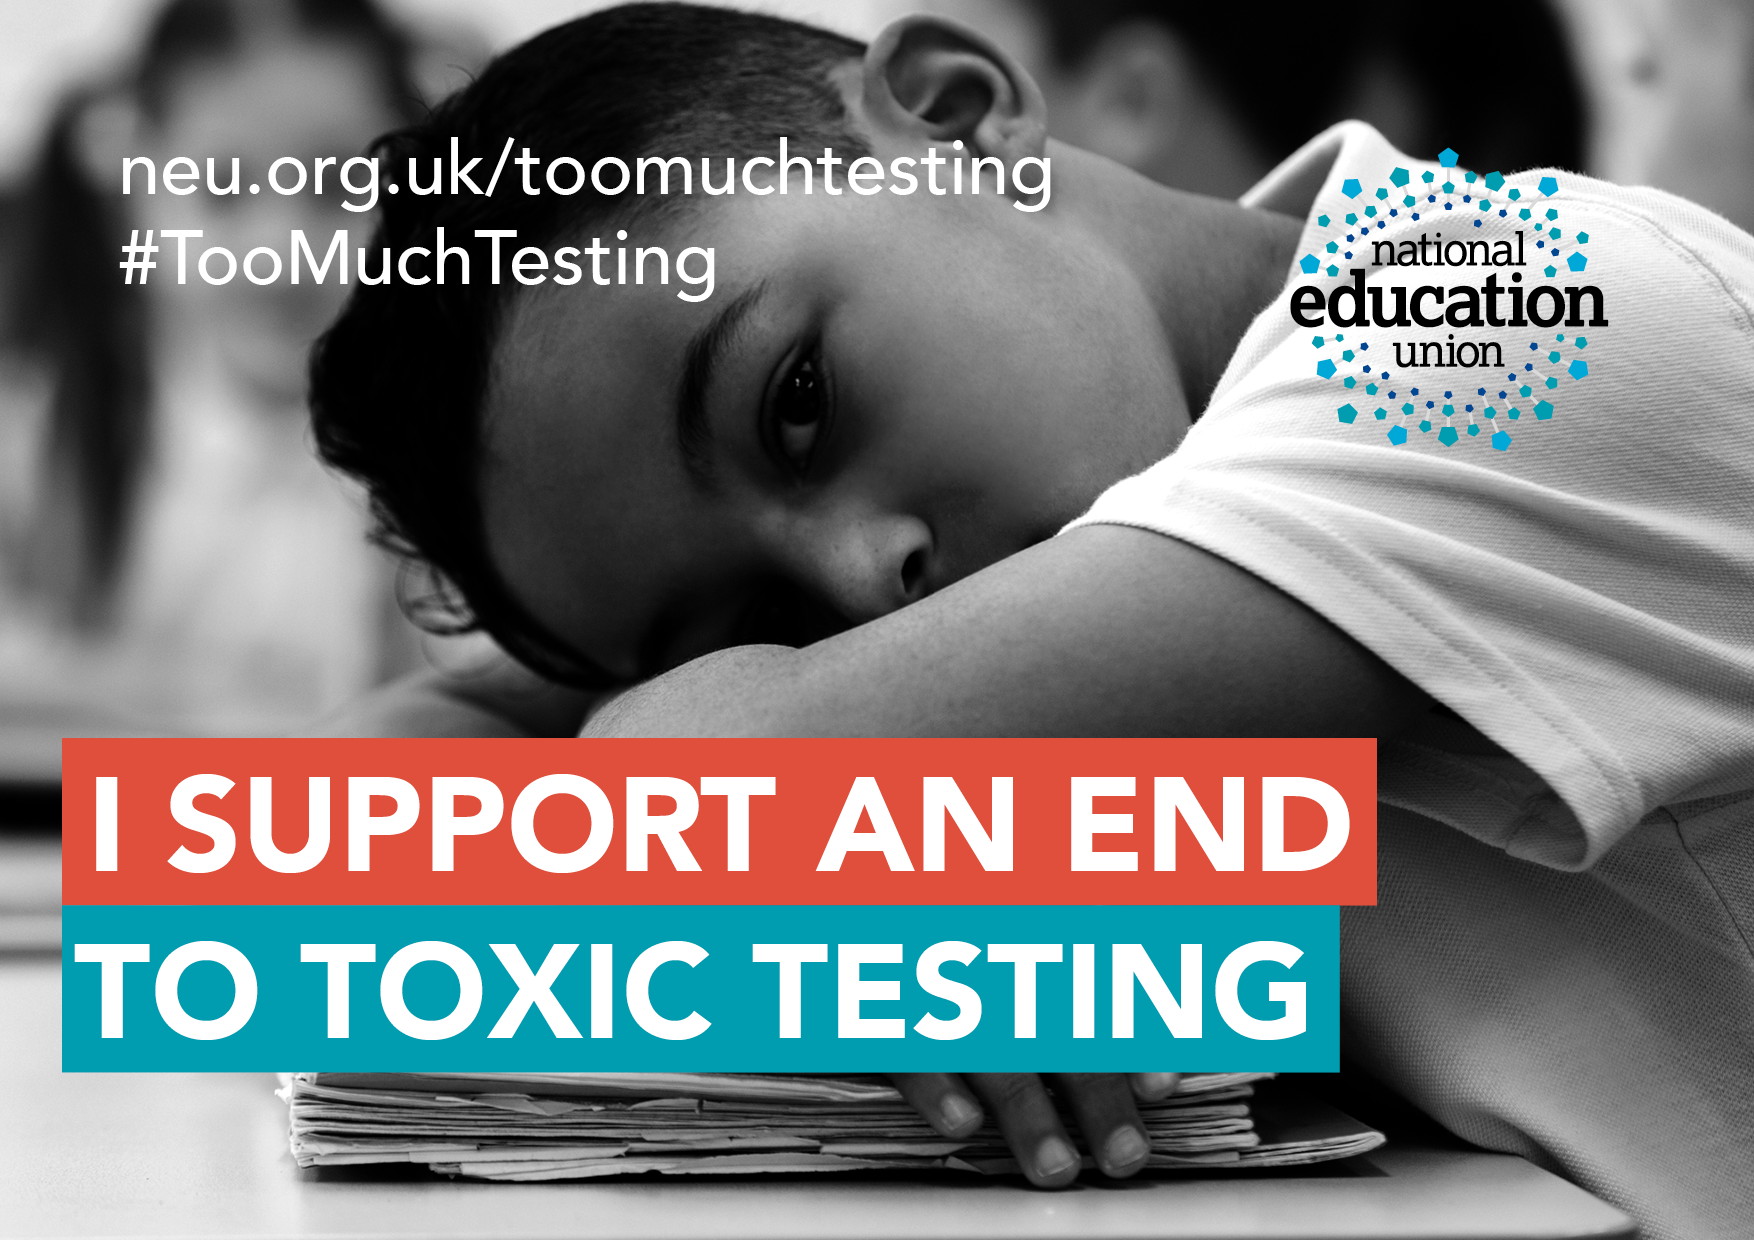 I support an end to toxic testing - card